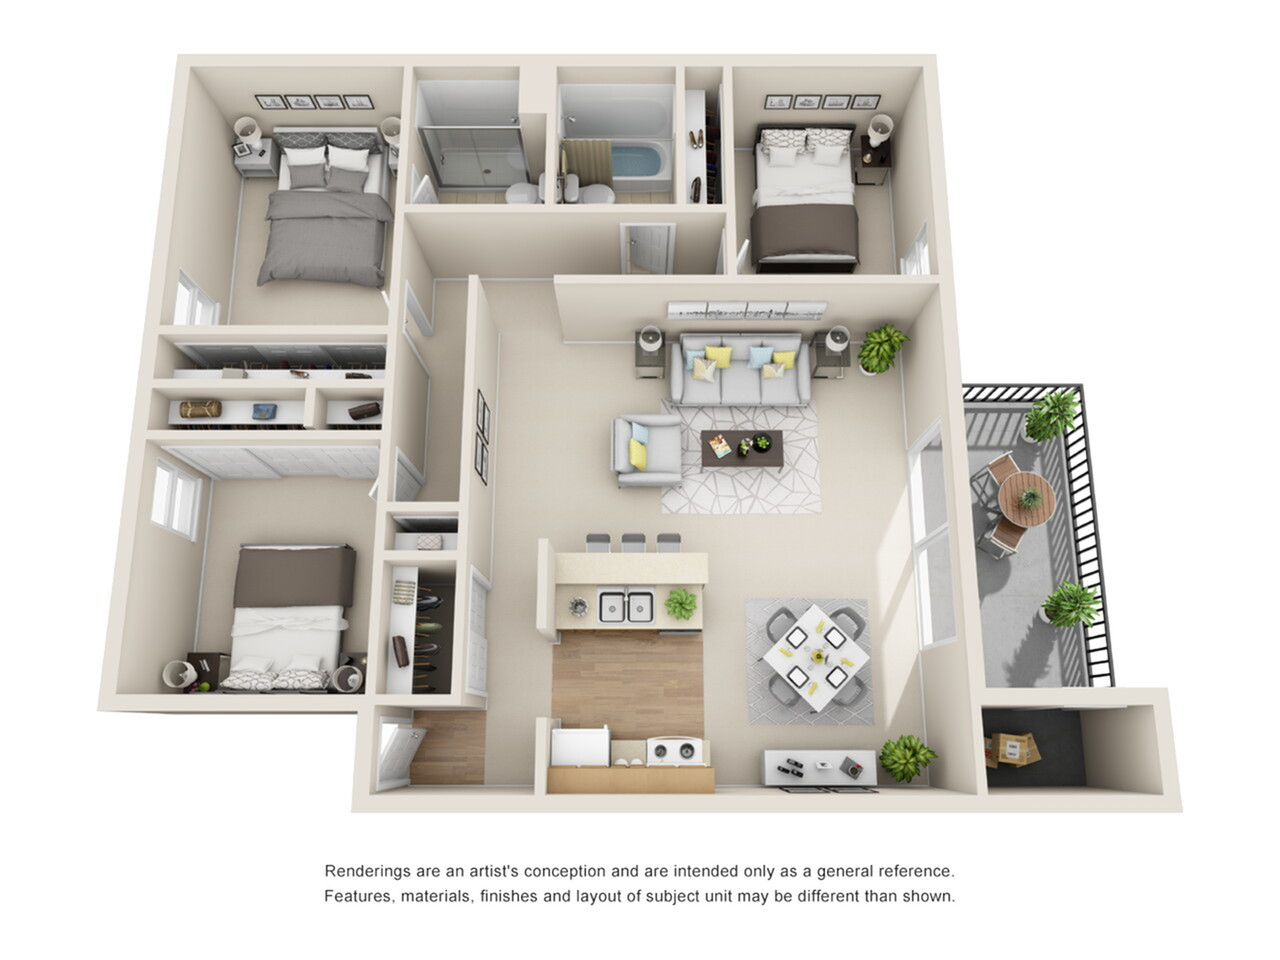 3 Bedroom Floor Plan   Park Place on 92nd